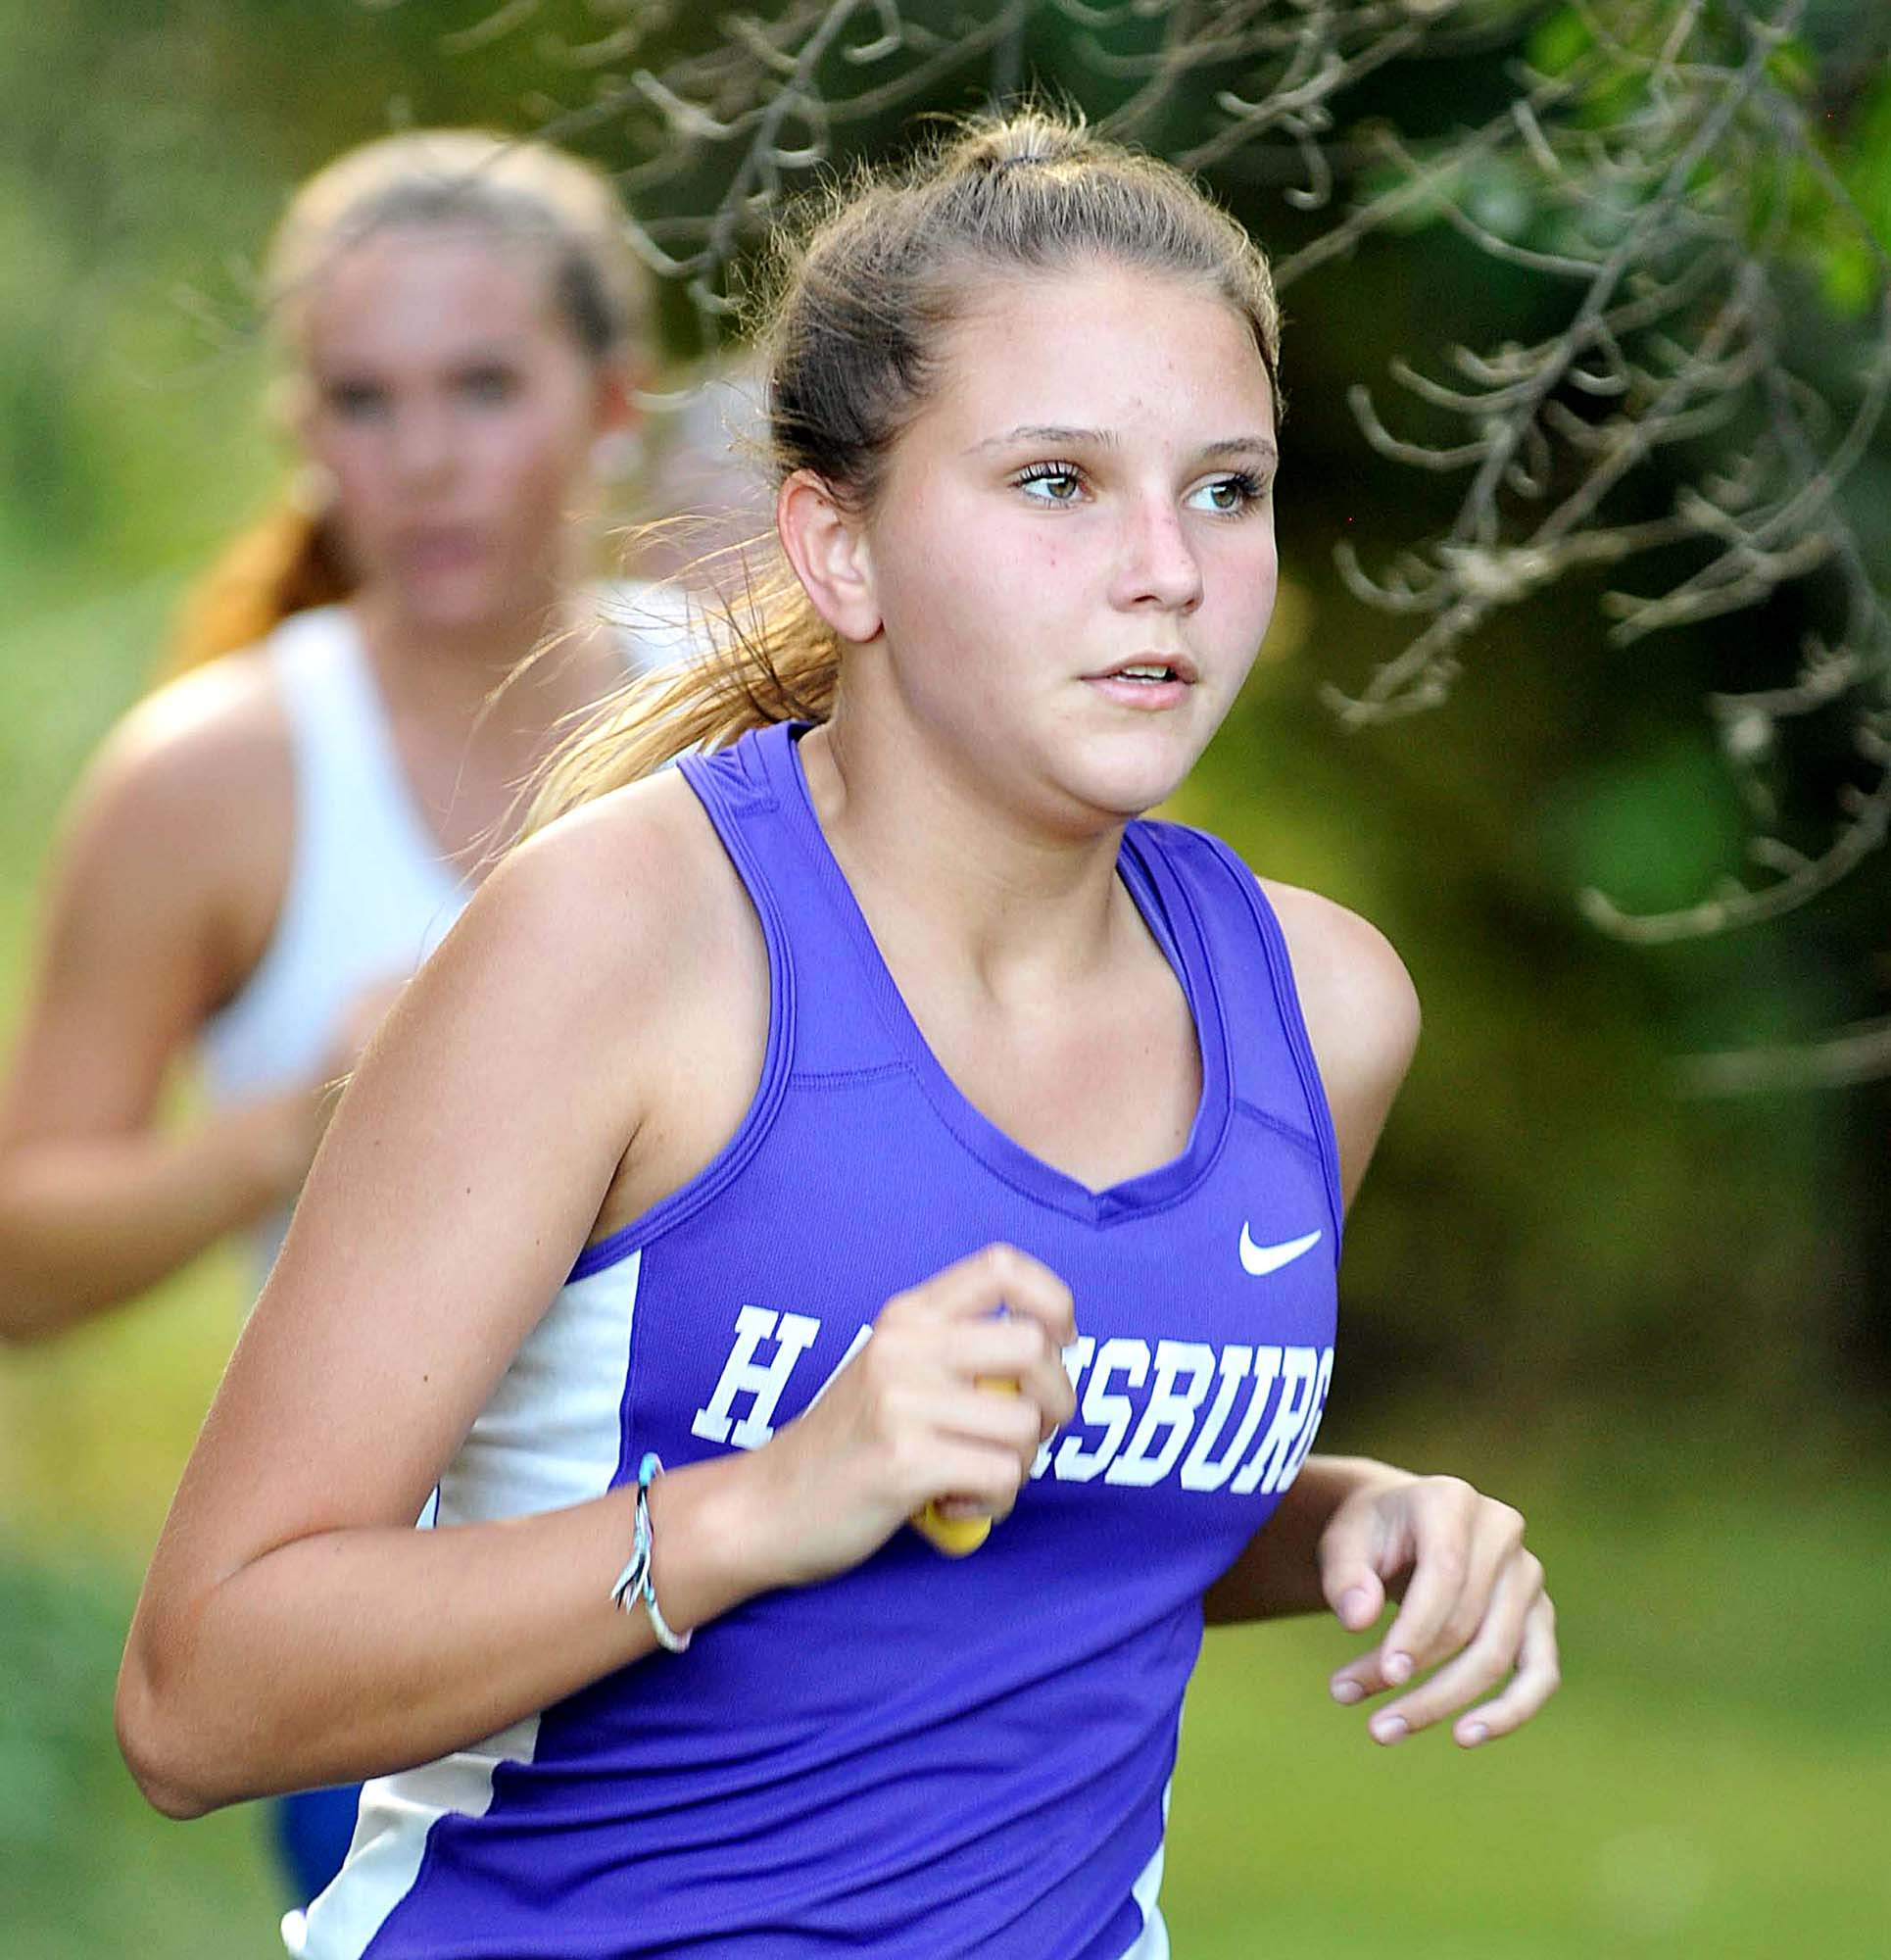 Shaunah Ballard had a time of 31:34 for a 13th place finish for Harrisburg Tuesday at SIC.